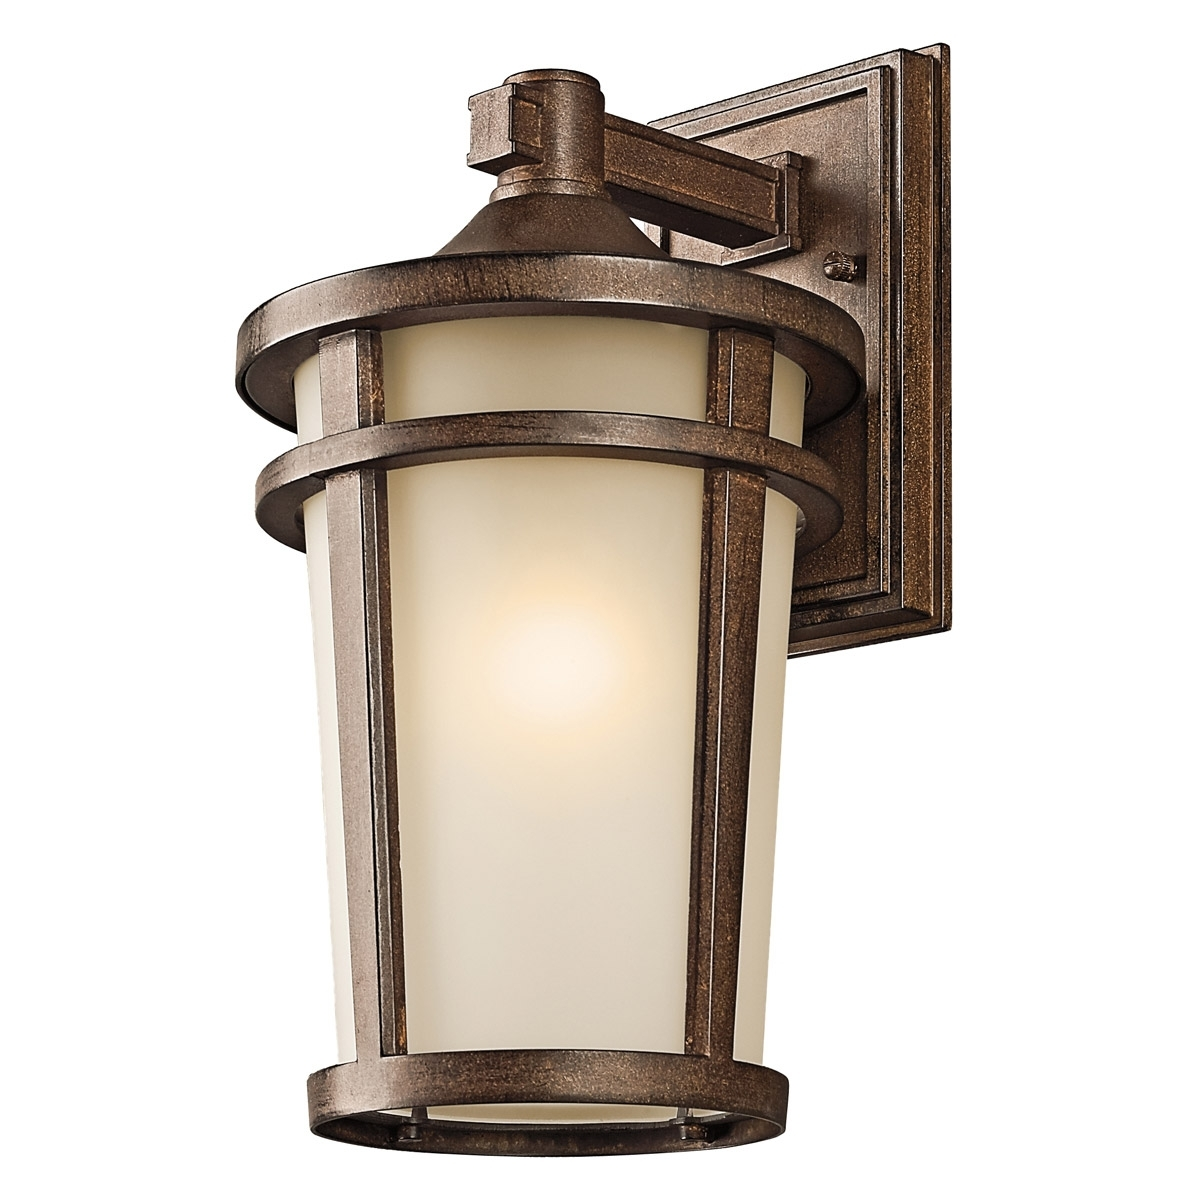 2018 High Quality Outdoor Wall Lighting Within Light : Contemporary Outdoor Wall Lights Photo Exterior Mounted (View 1 of 20)